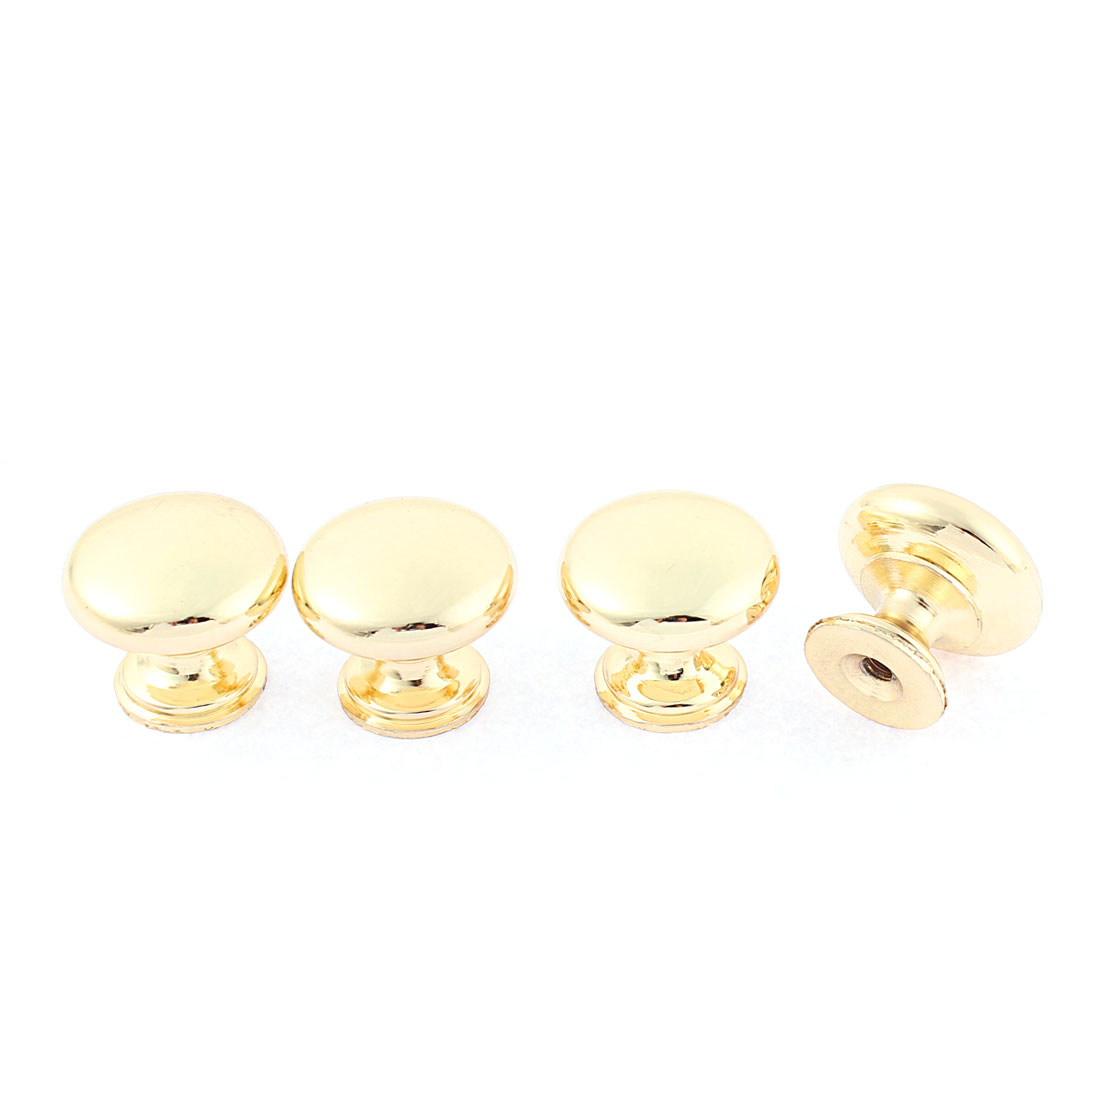 Kitchen Cabinet Drawer Round Knobs Gold Tone 25mm Dia 4Pcs